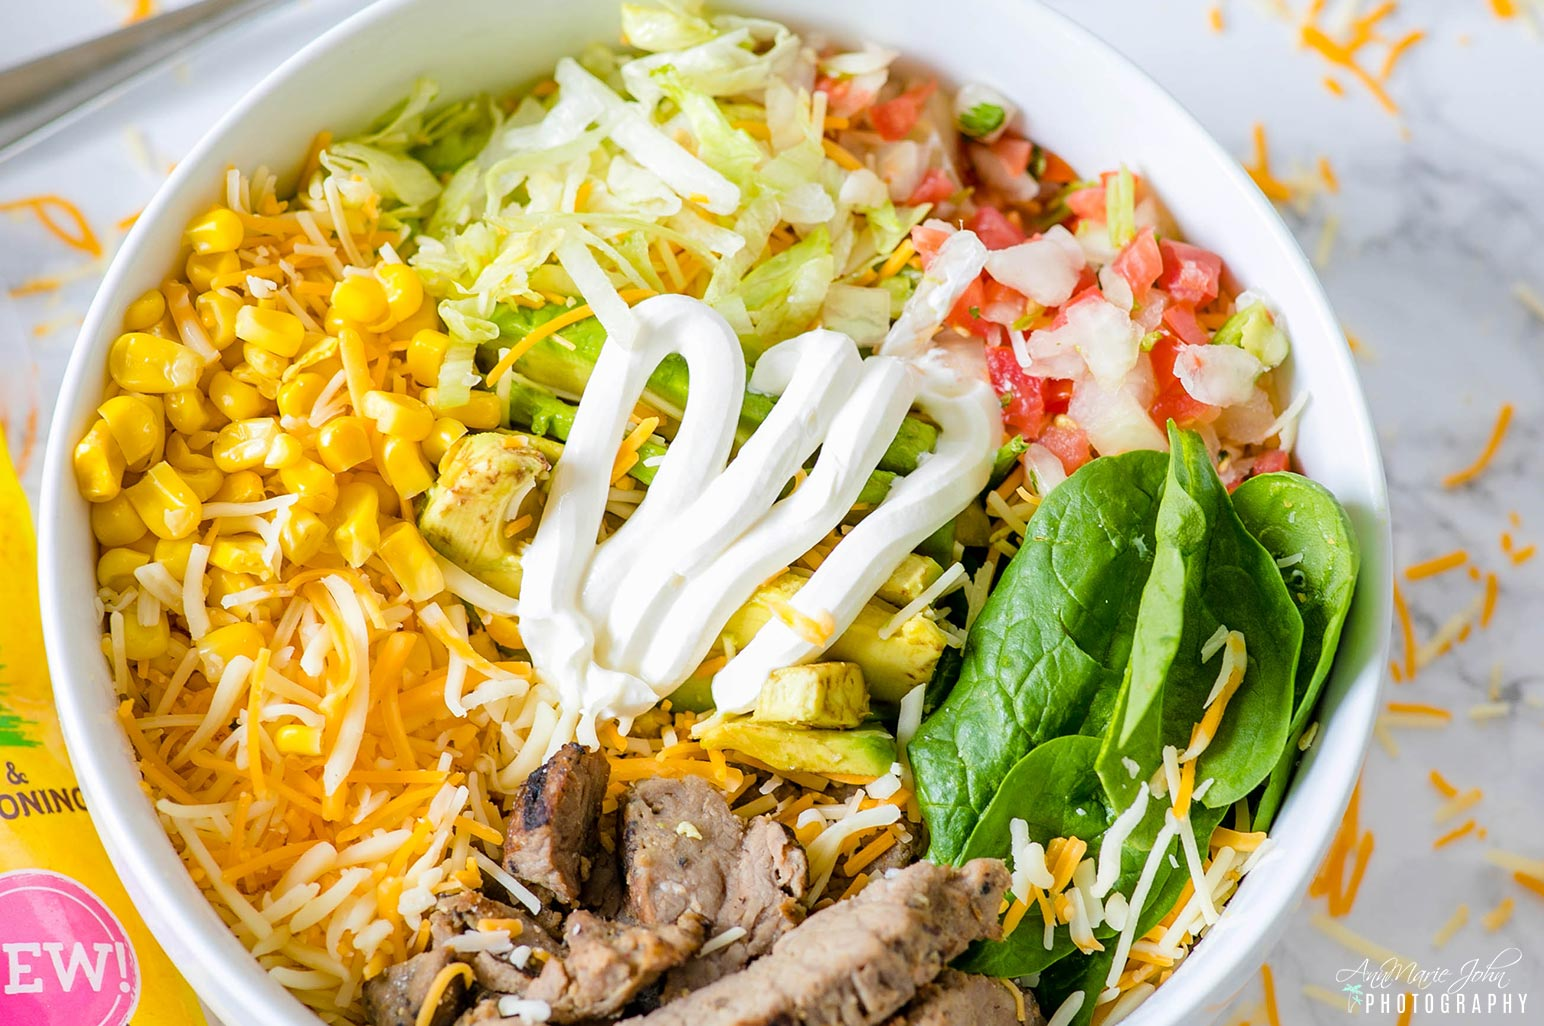 Burrito Bowl Made with Old El Paso Cheese